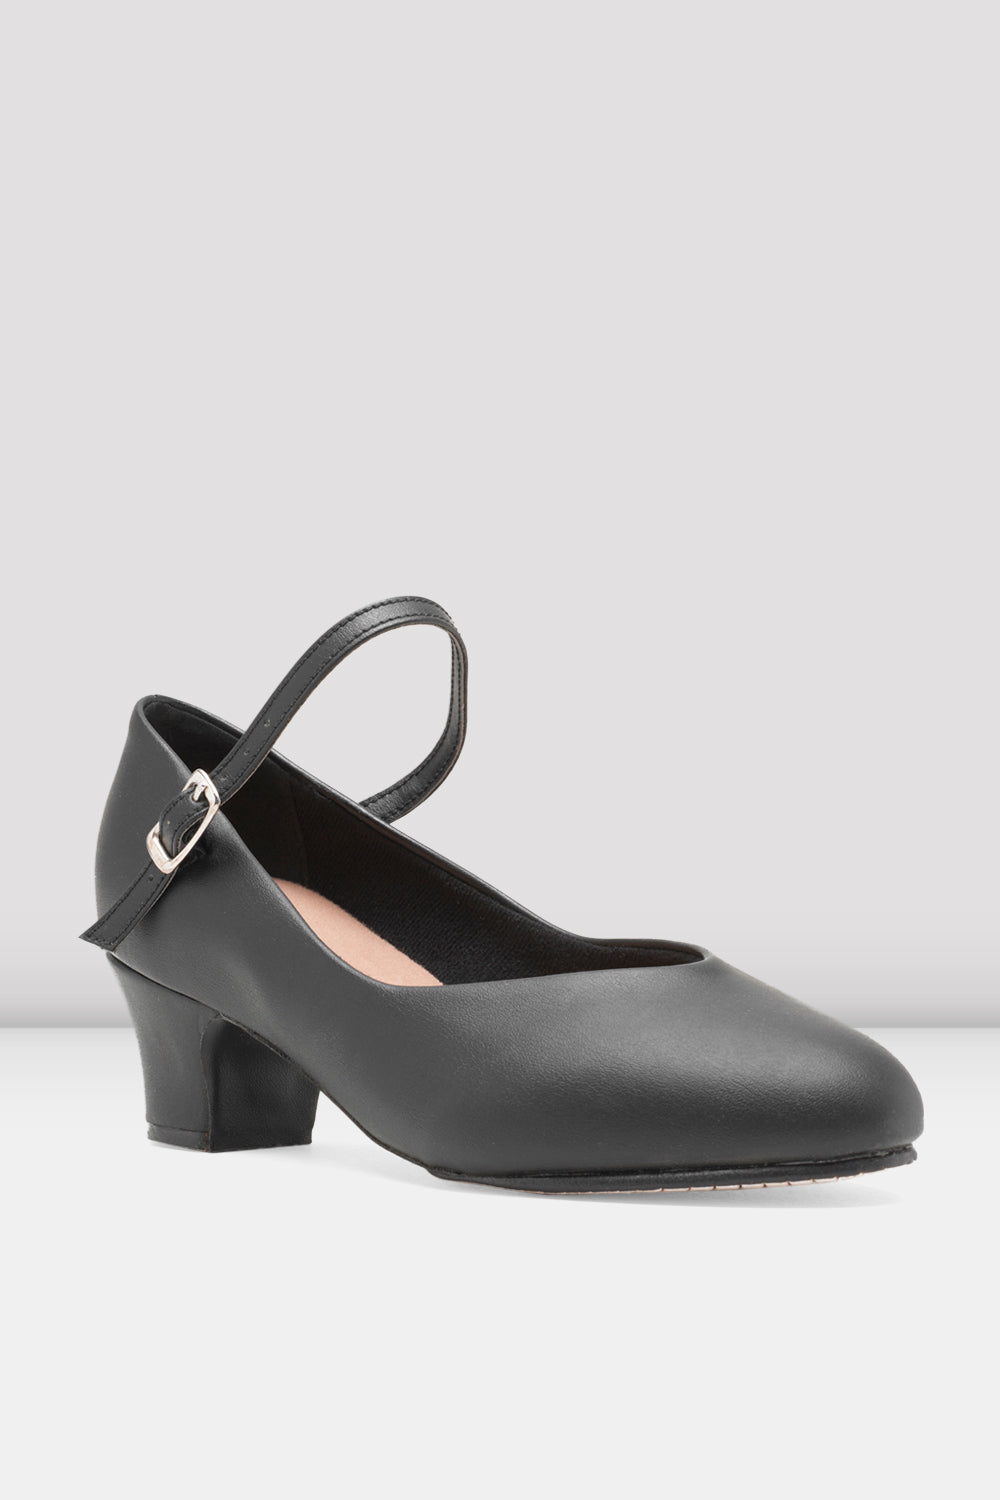 Ladies Diva Character Shoes - BLOCH US